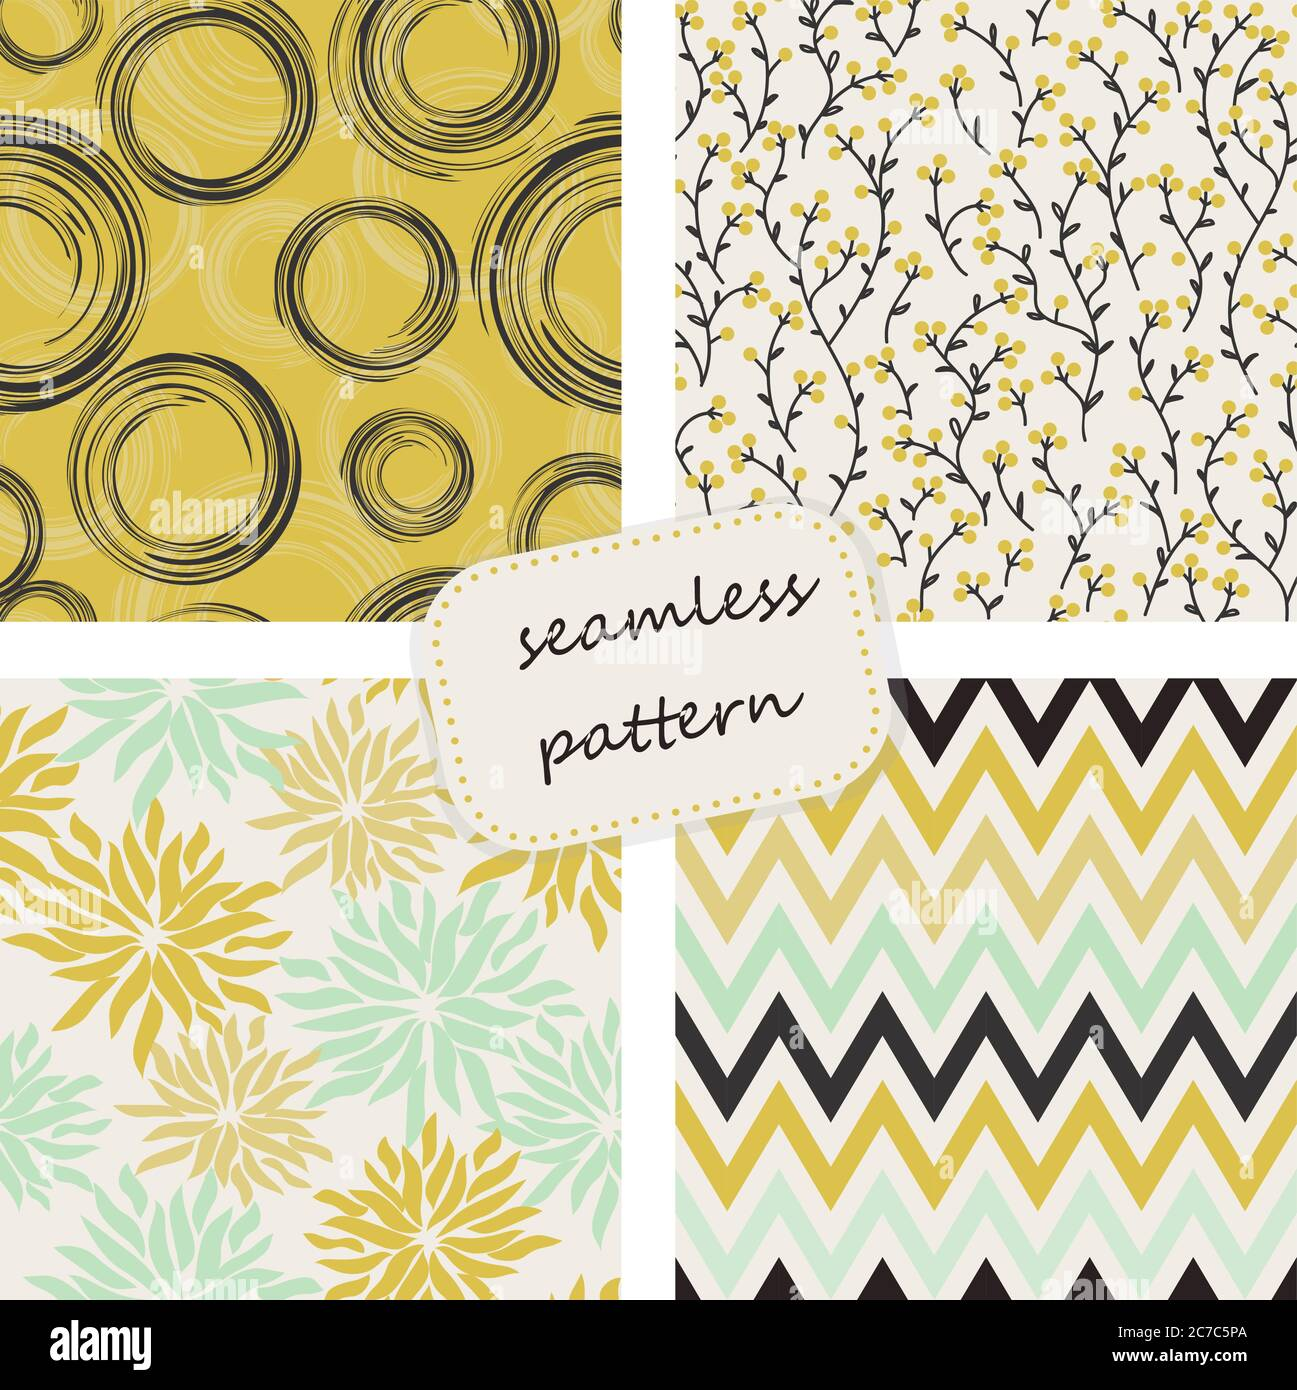 Vintage seamless colorful pattern in retro colors. Hand drawn. Vector pattern can be used for wallpaper, textile, invitation, web page background. Stock Vector